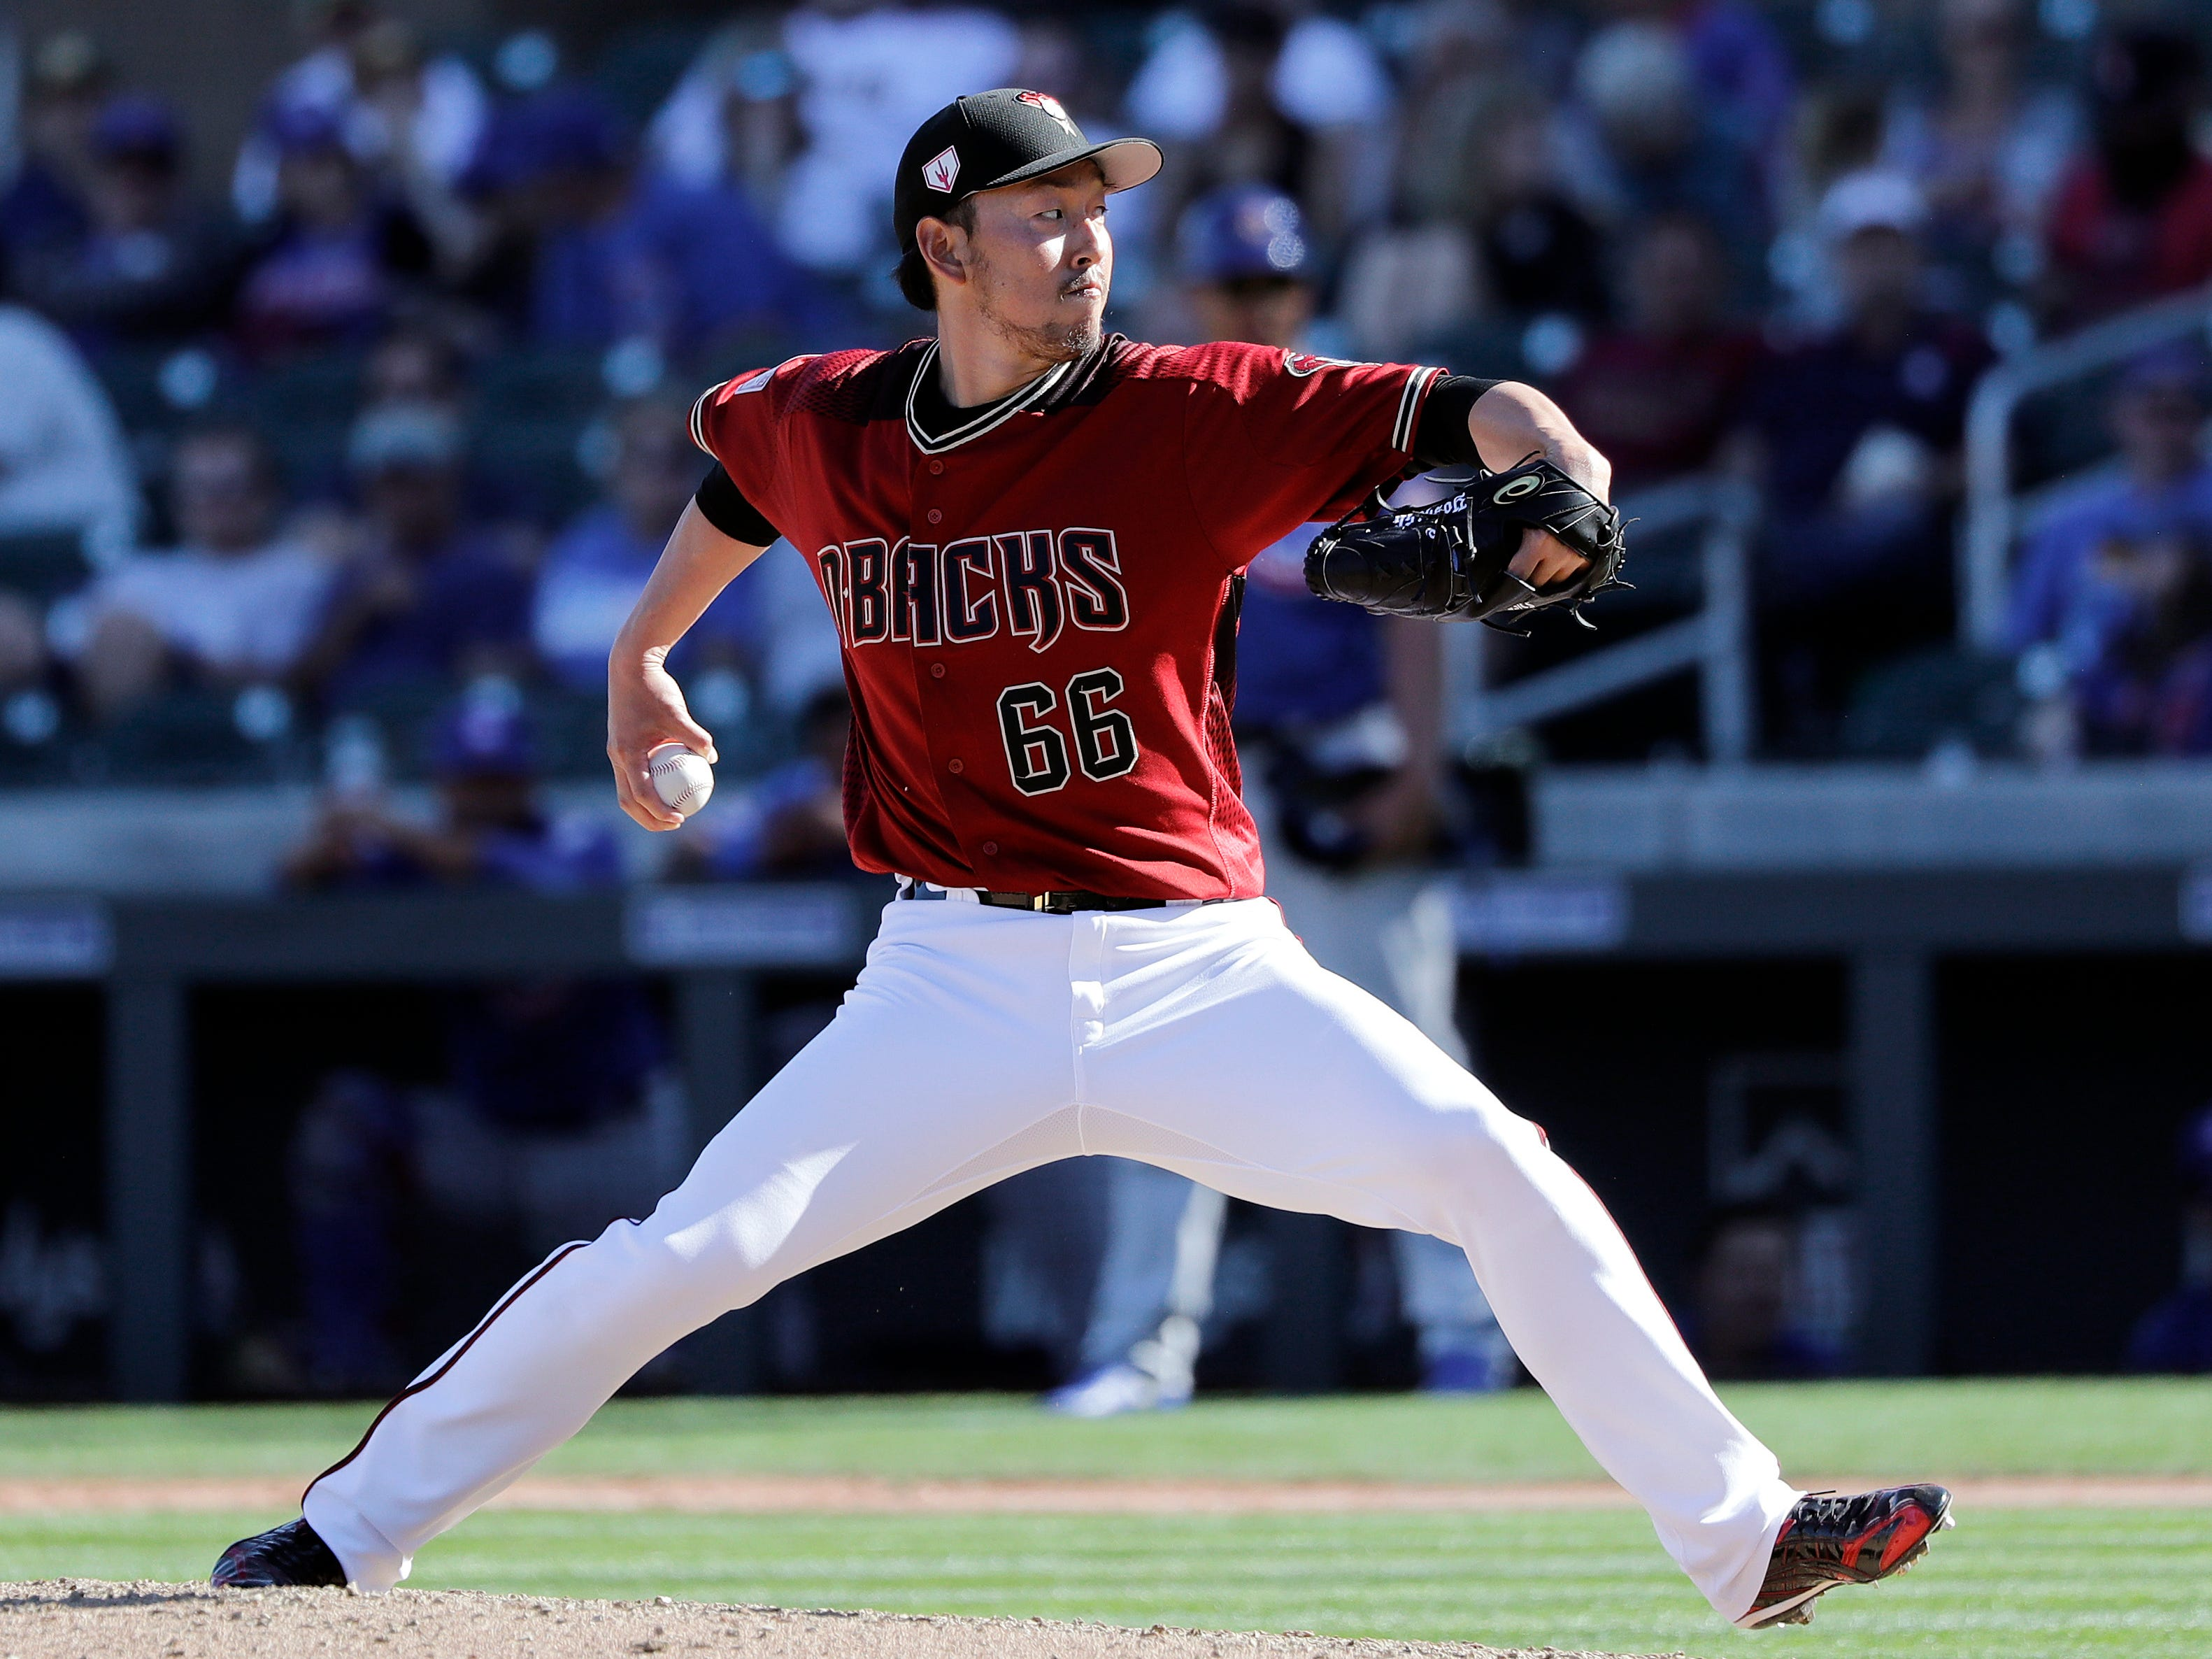 Arizona Diamondbacks' Yoshihisa Hirano throws against the Chicago Cubs in the eighth inning of a spring training baseball game Saturday, March 16, 2019, in Scottsdale, Ariz.